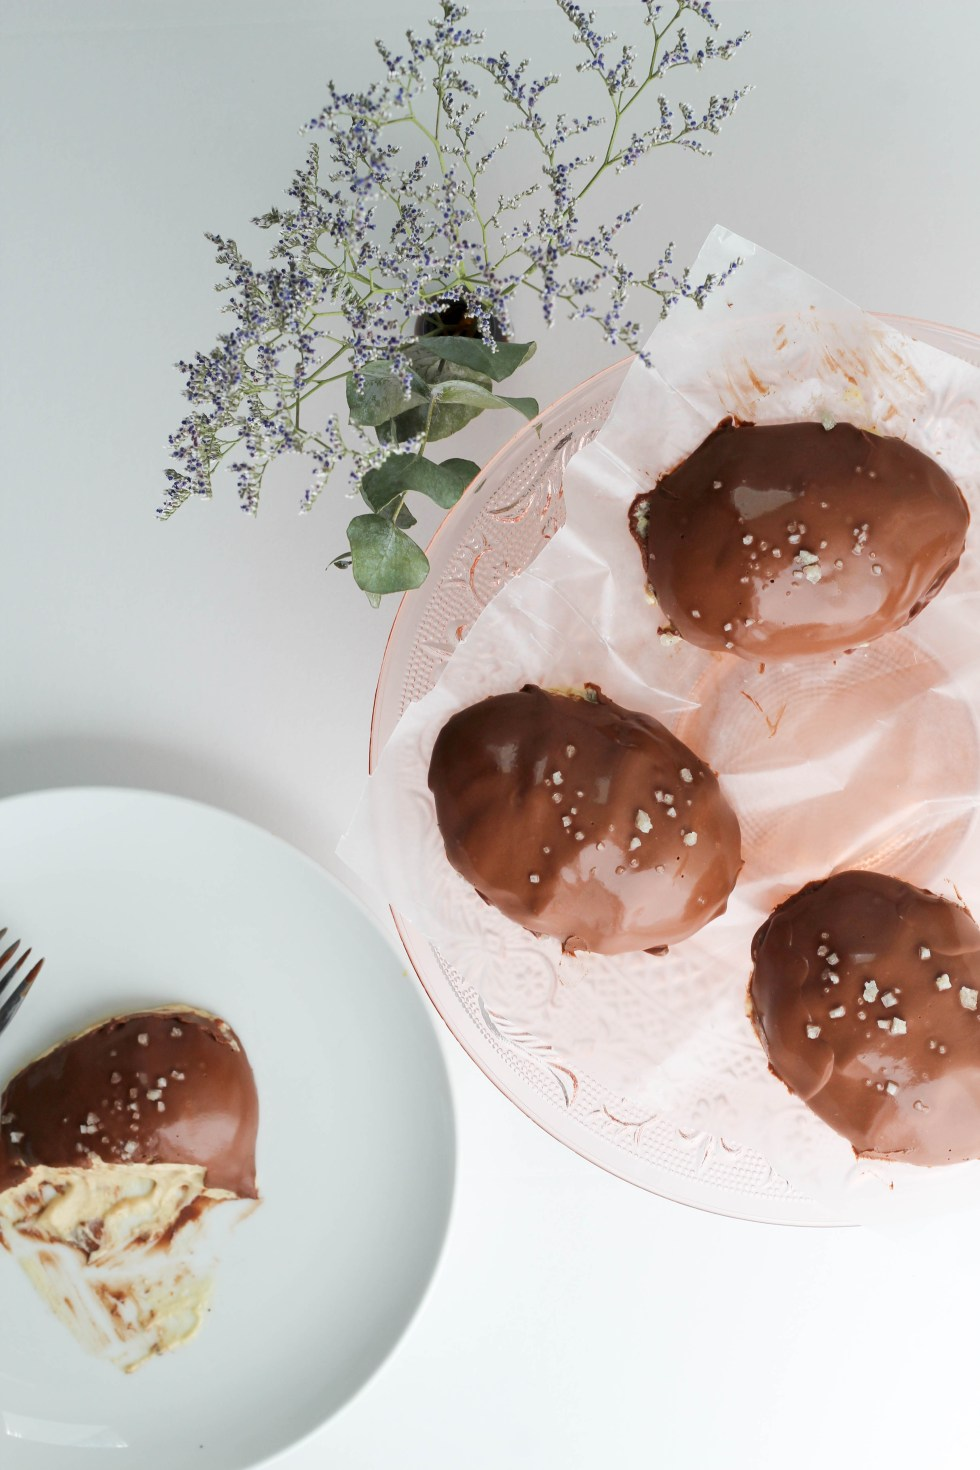 Chocolate Covered Peanut Butter Mousse Eggs with sea salt. 7 ingredients and all natural // POP KITCHEN